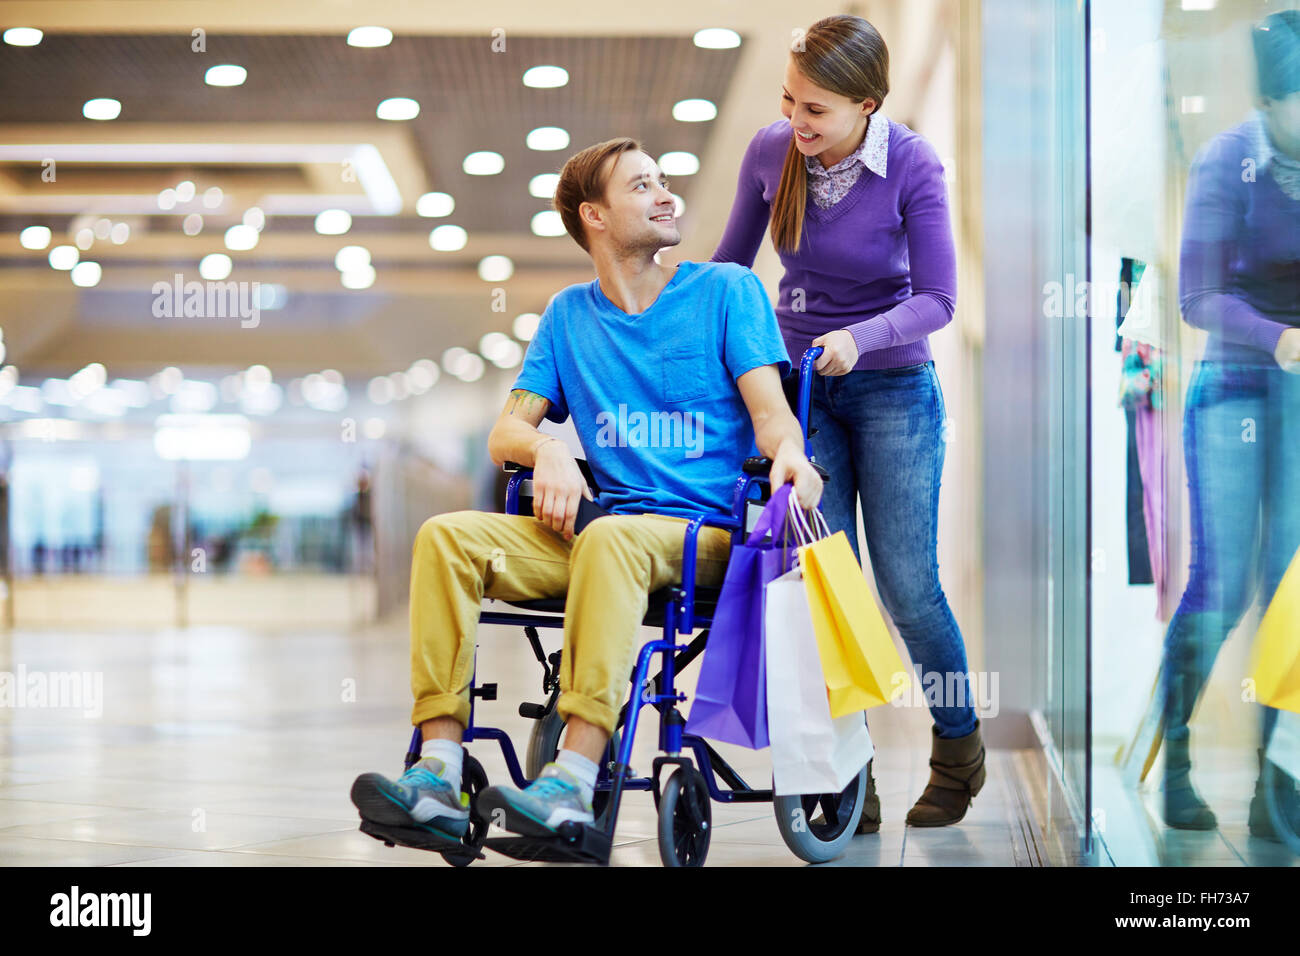 Caring girl talking to her boyfriend in wheelchair during sale - Stock Image